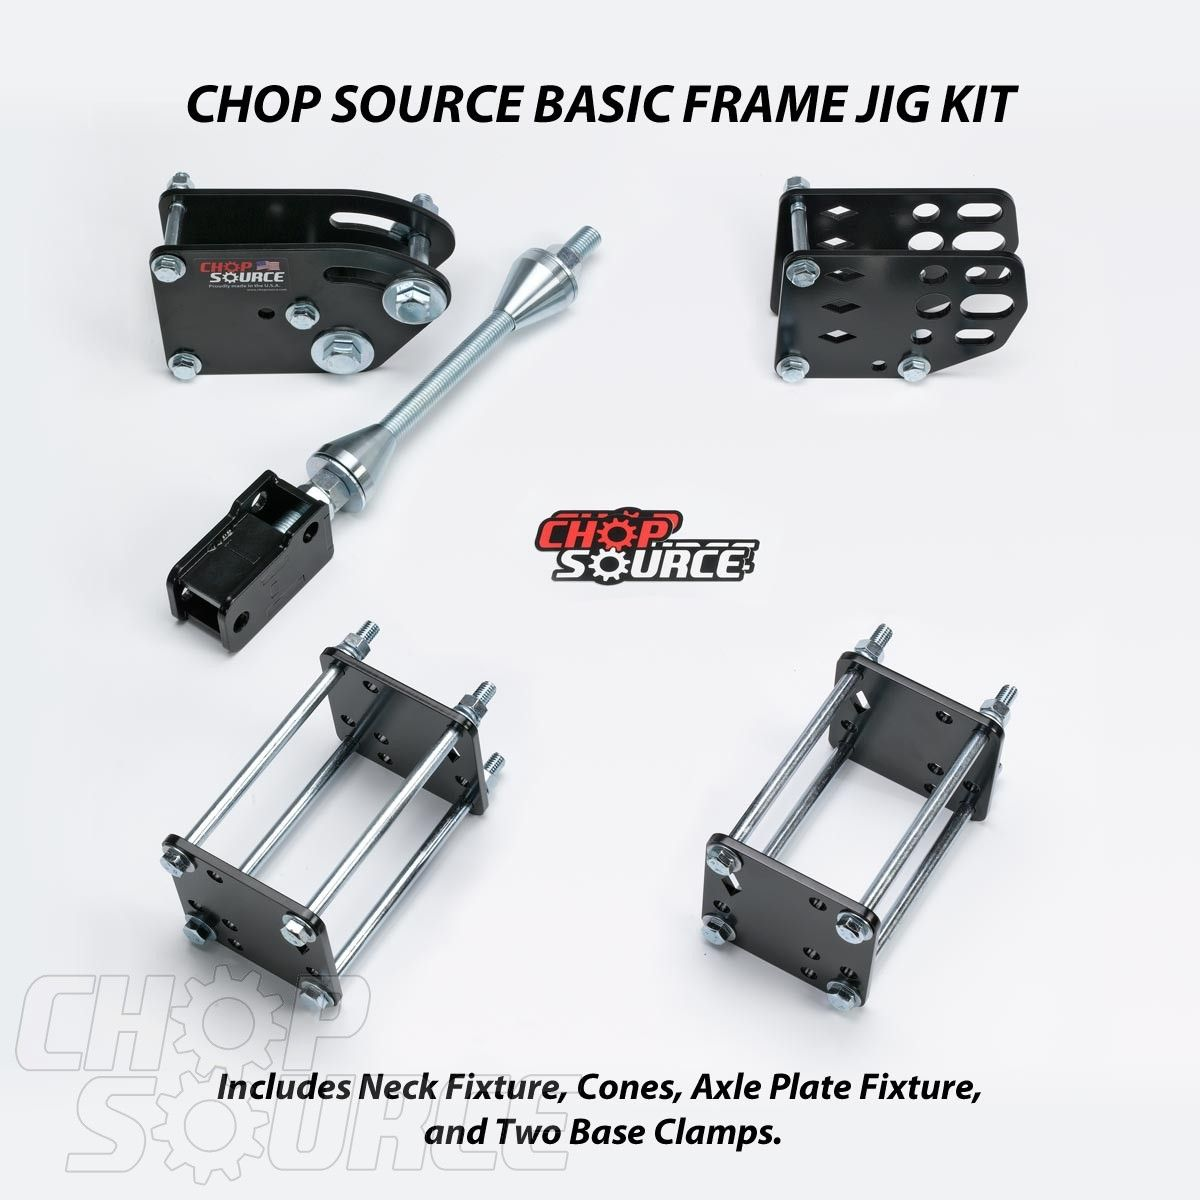 Chop Source Basic Frame Jig Kit Basic Frames Welding Jig Welding